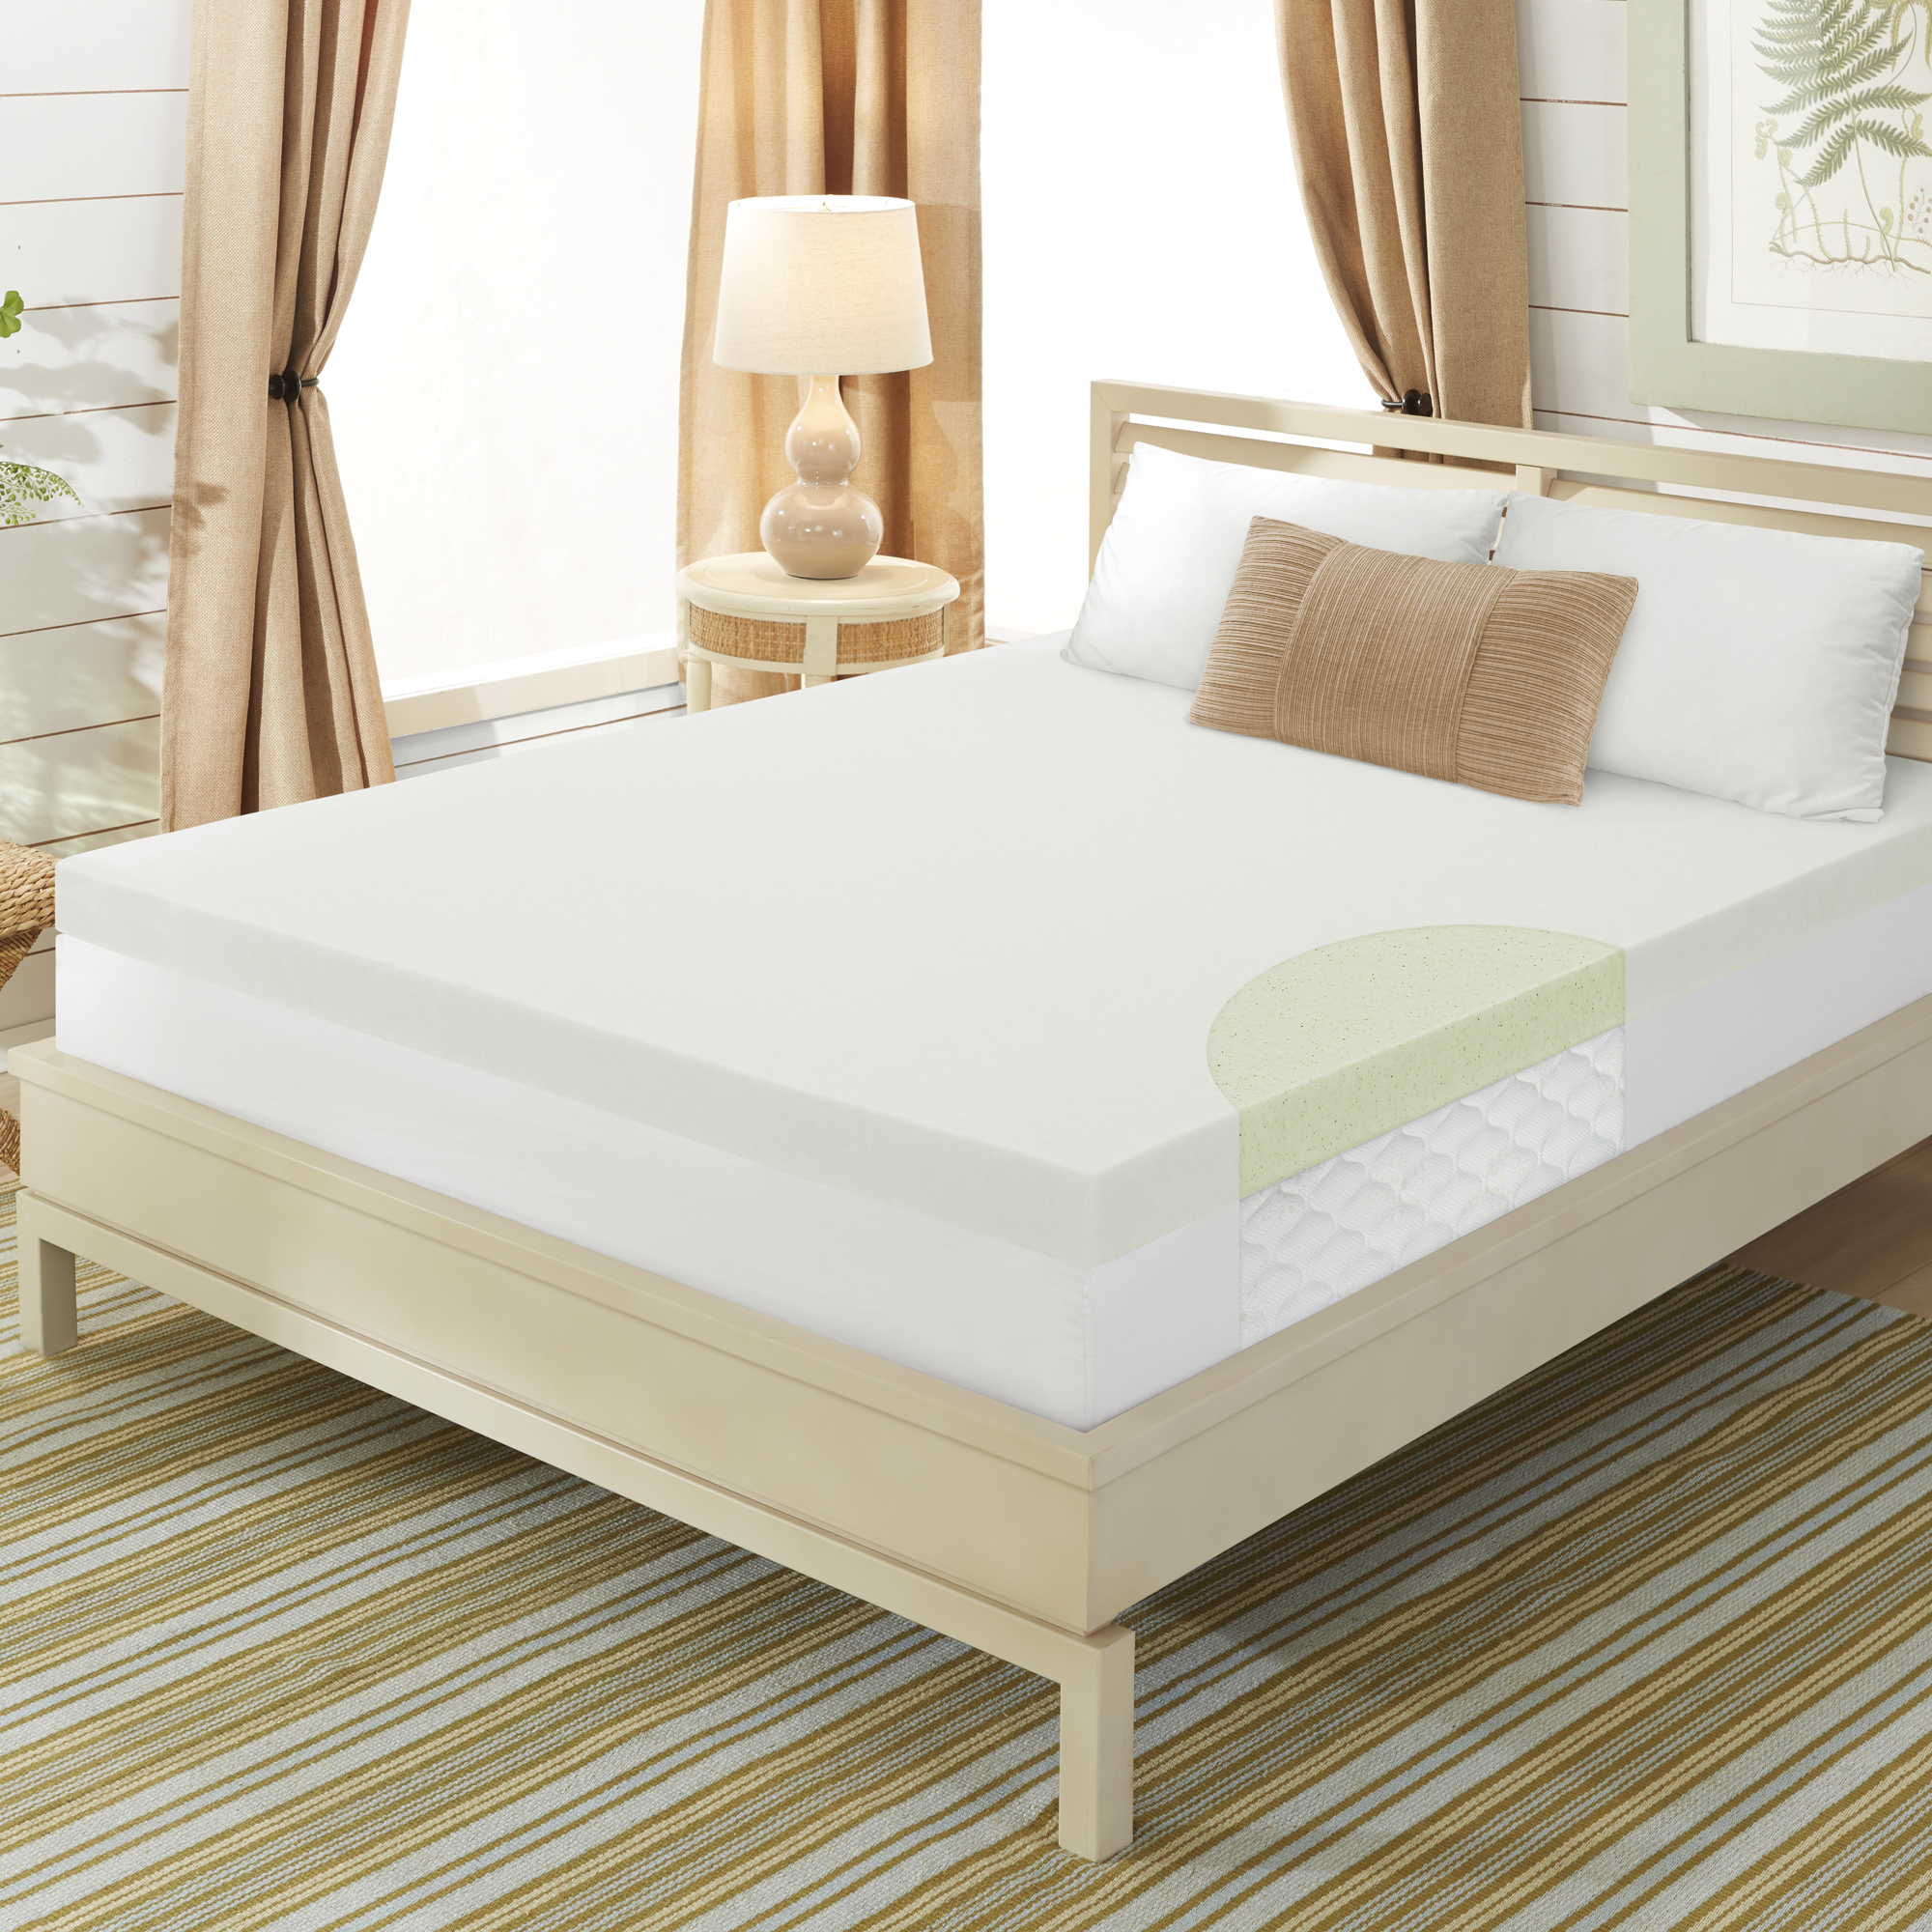 "Dream Serenity 3"" Cool Breeze Memory Support Mattress Topper"